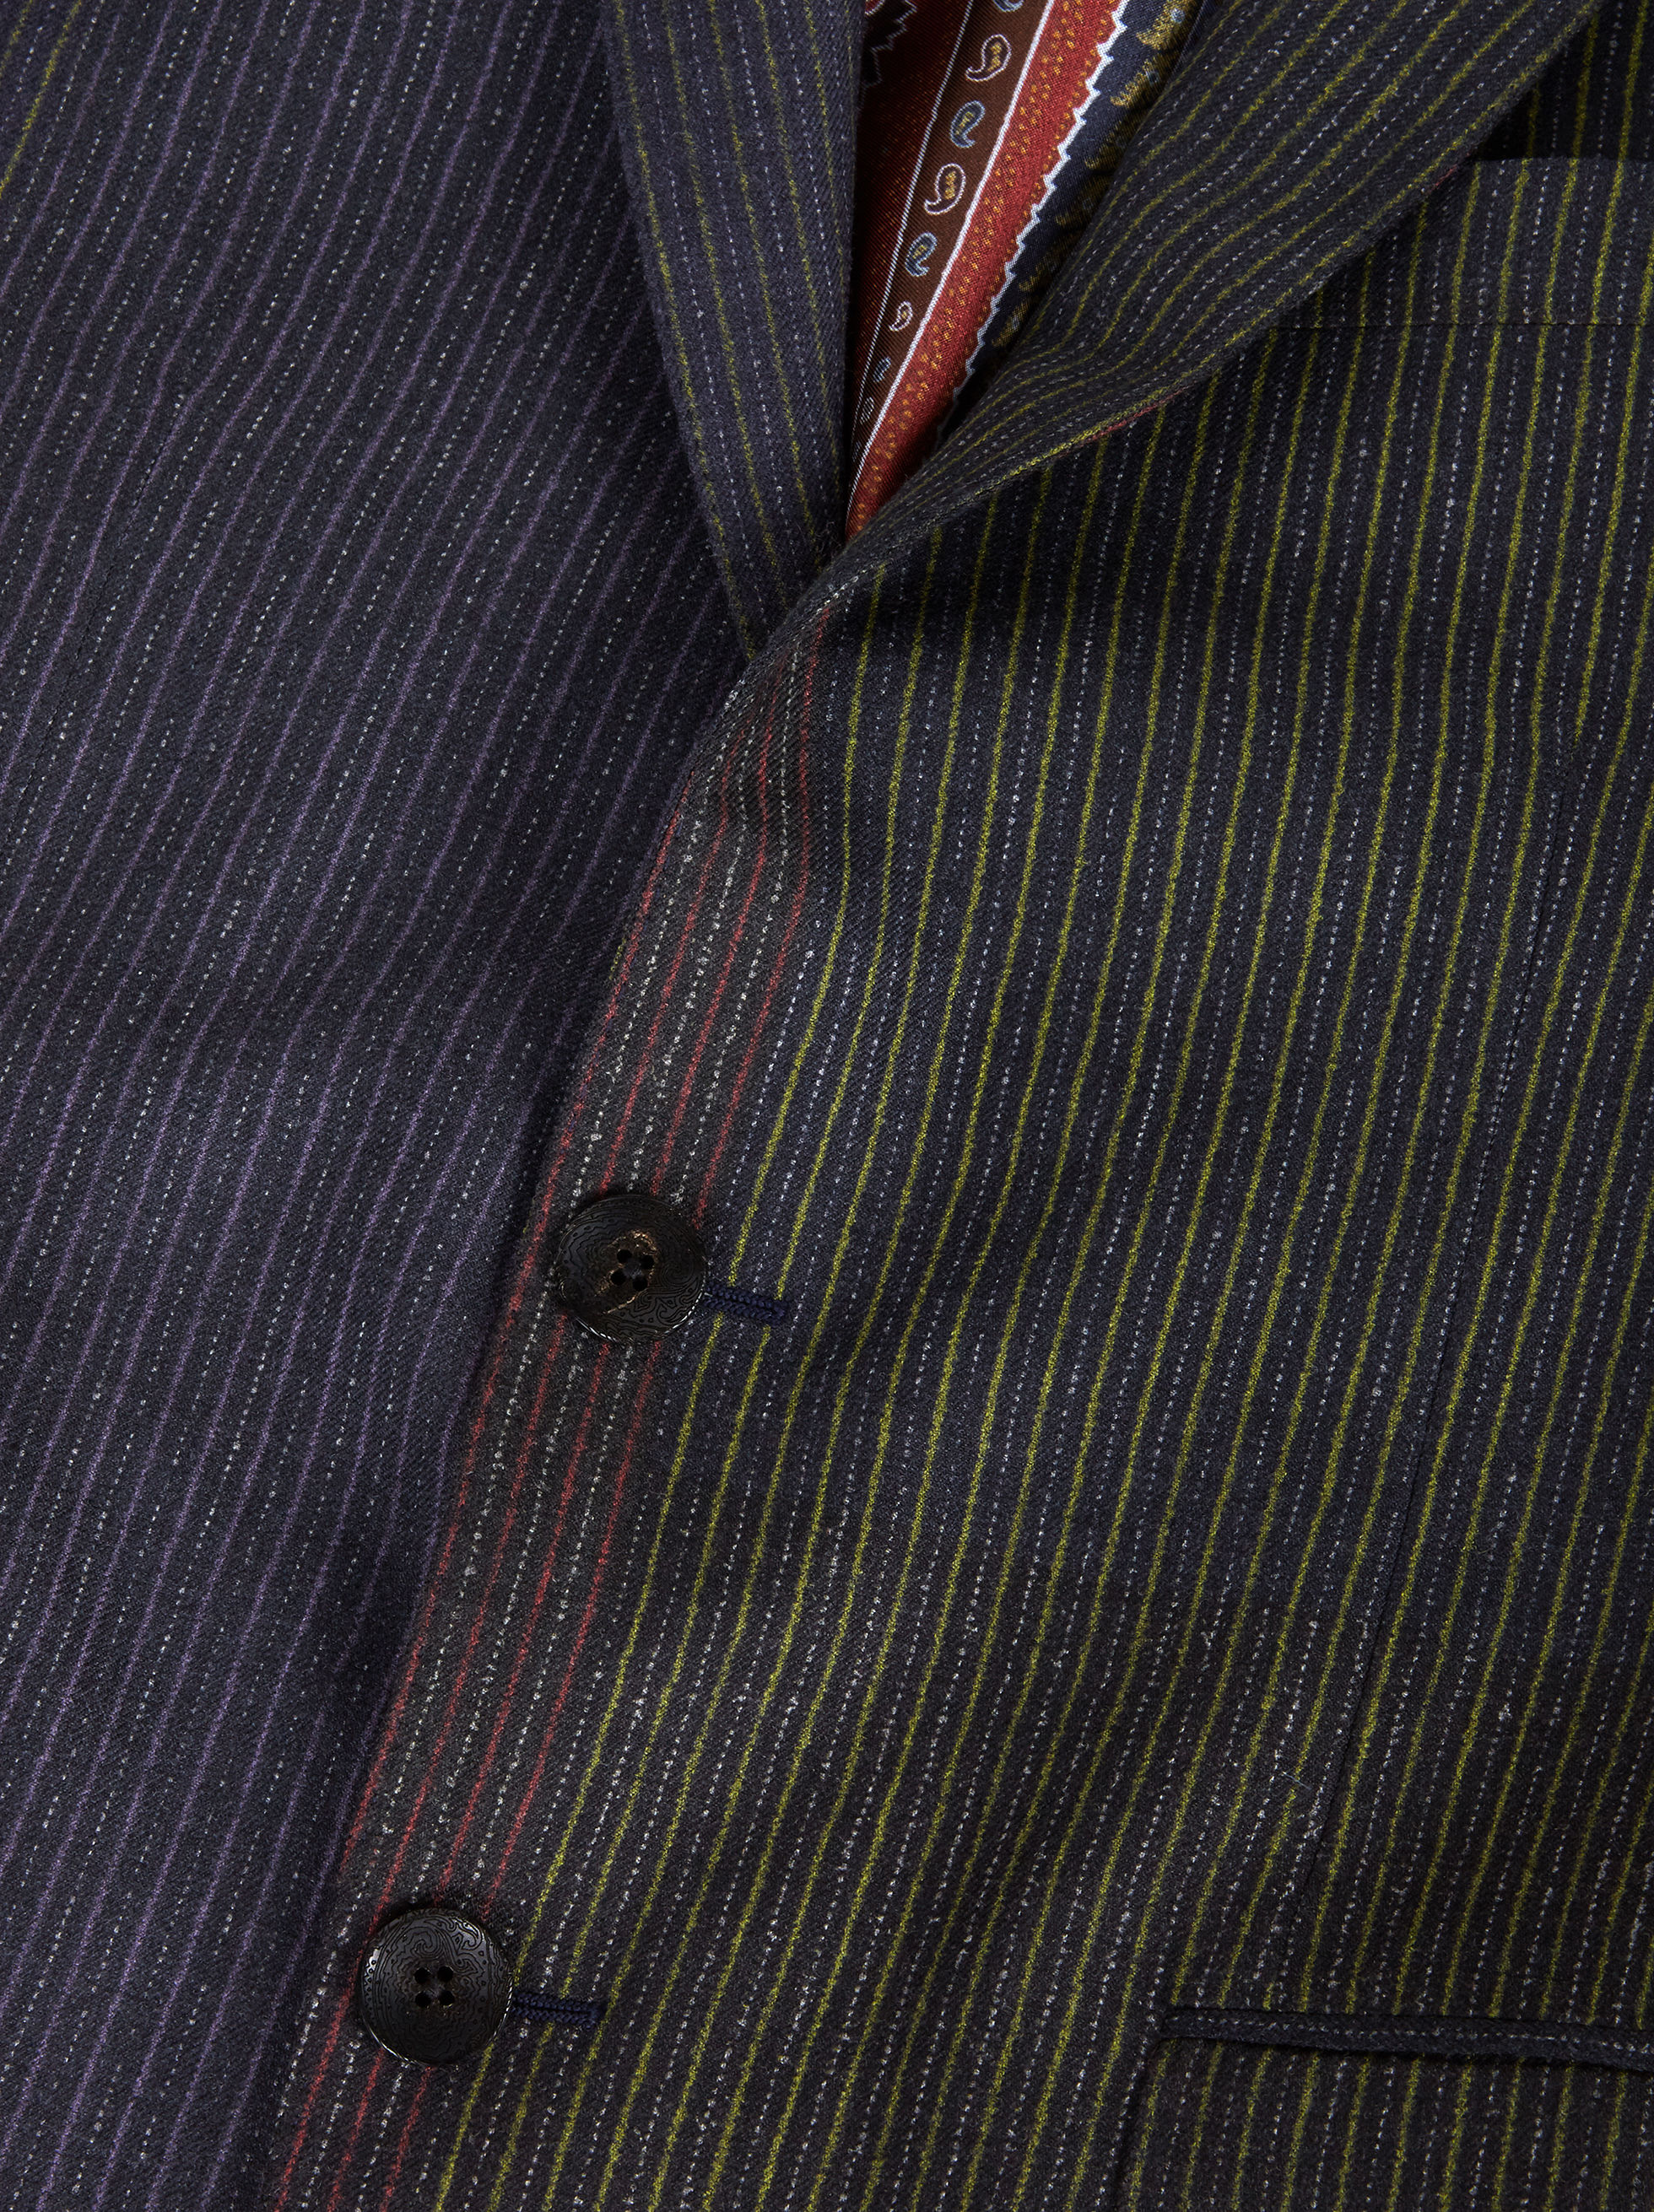 PATCHWORK PINSTRIPE TAILORED SUIT